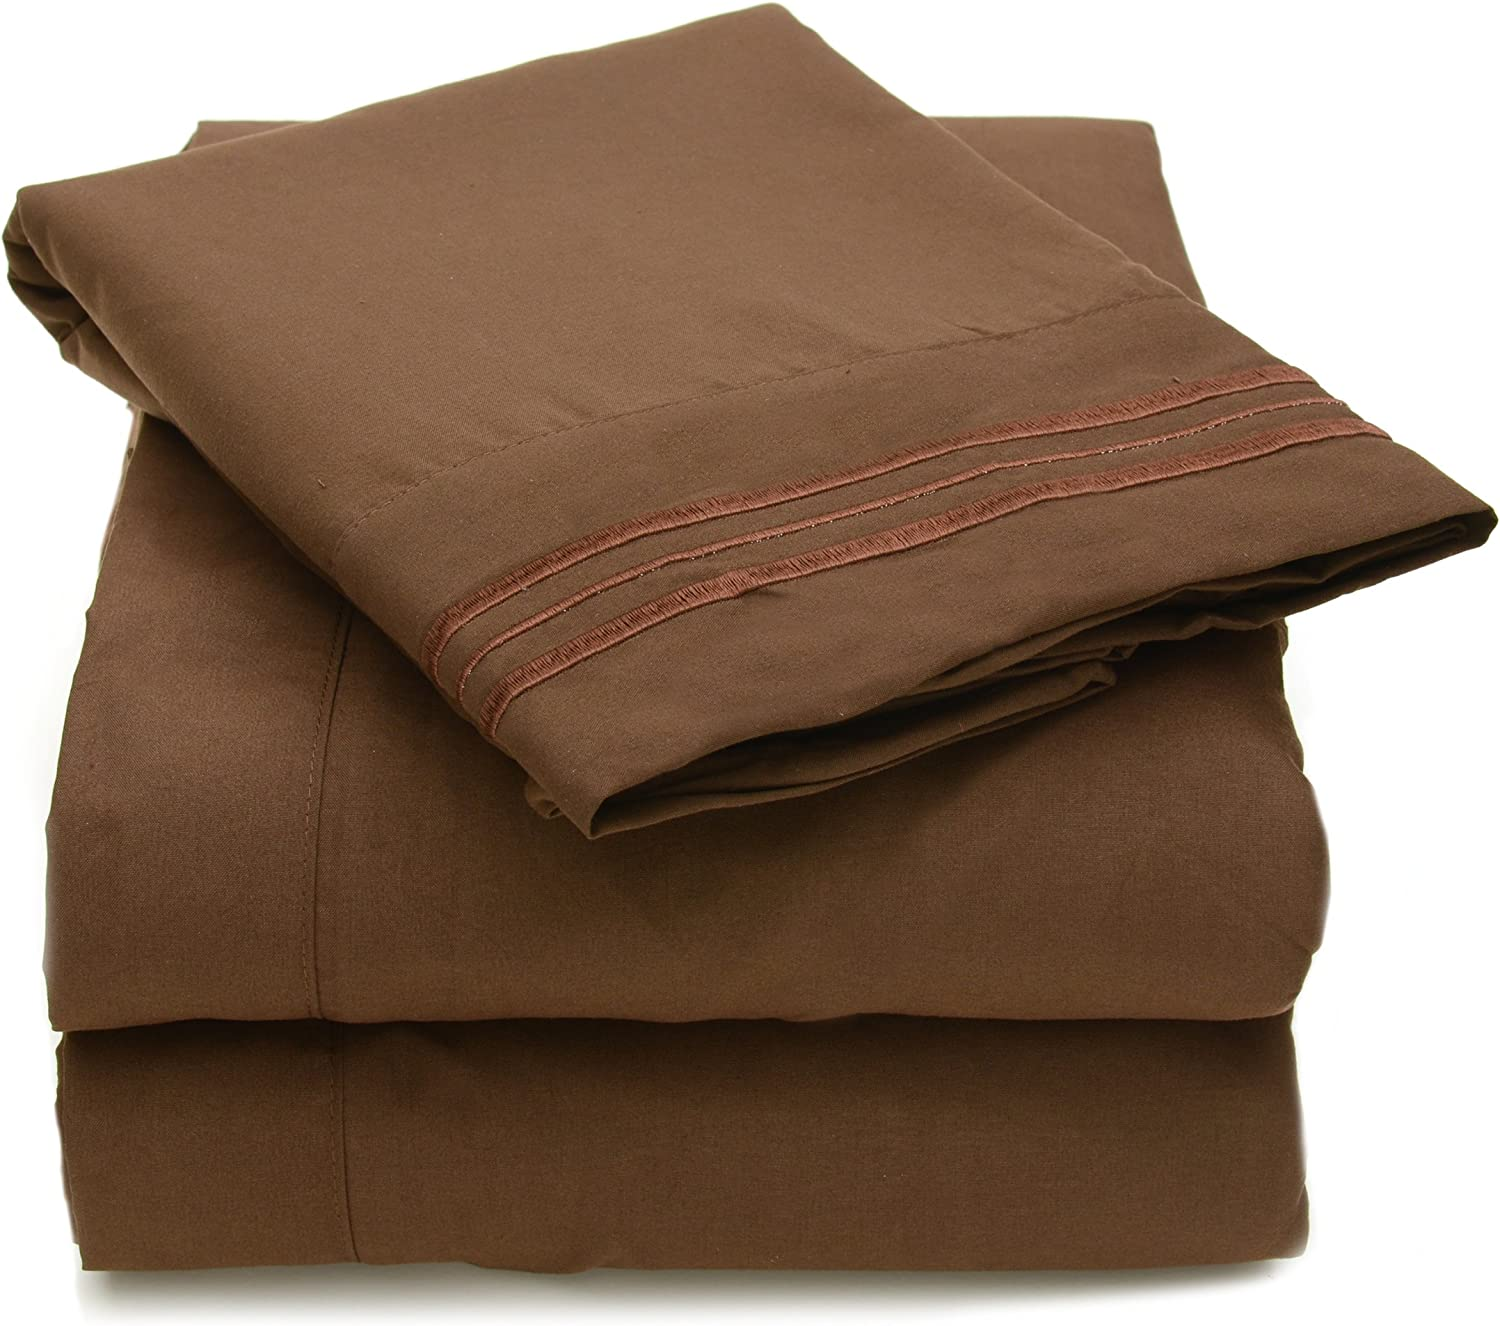 Sweet Home Collection 12 Colors Collection 4 Piece Egyptian Quality Deep Pocket Bed Sheet Set, Full, Brown